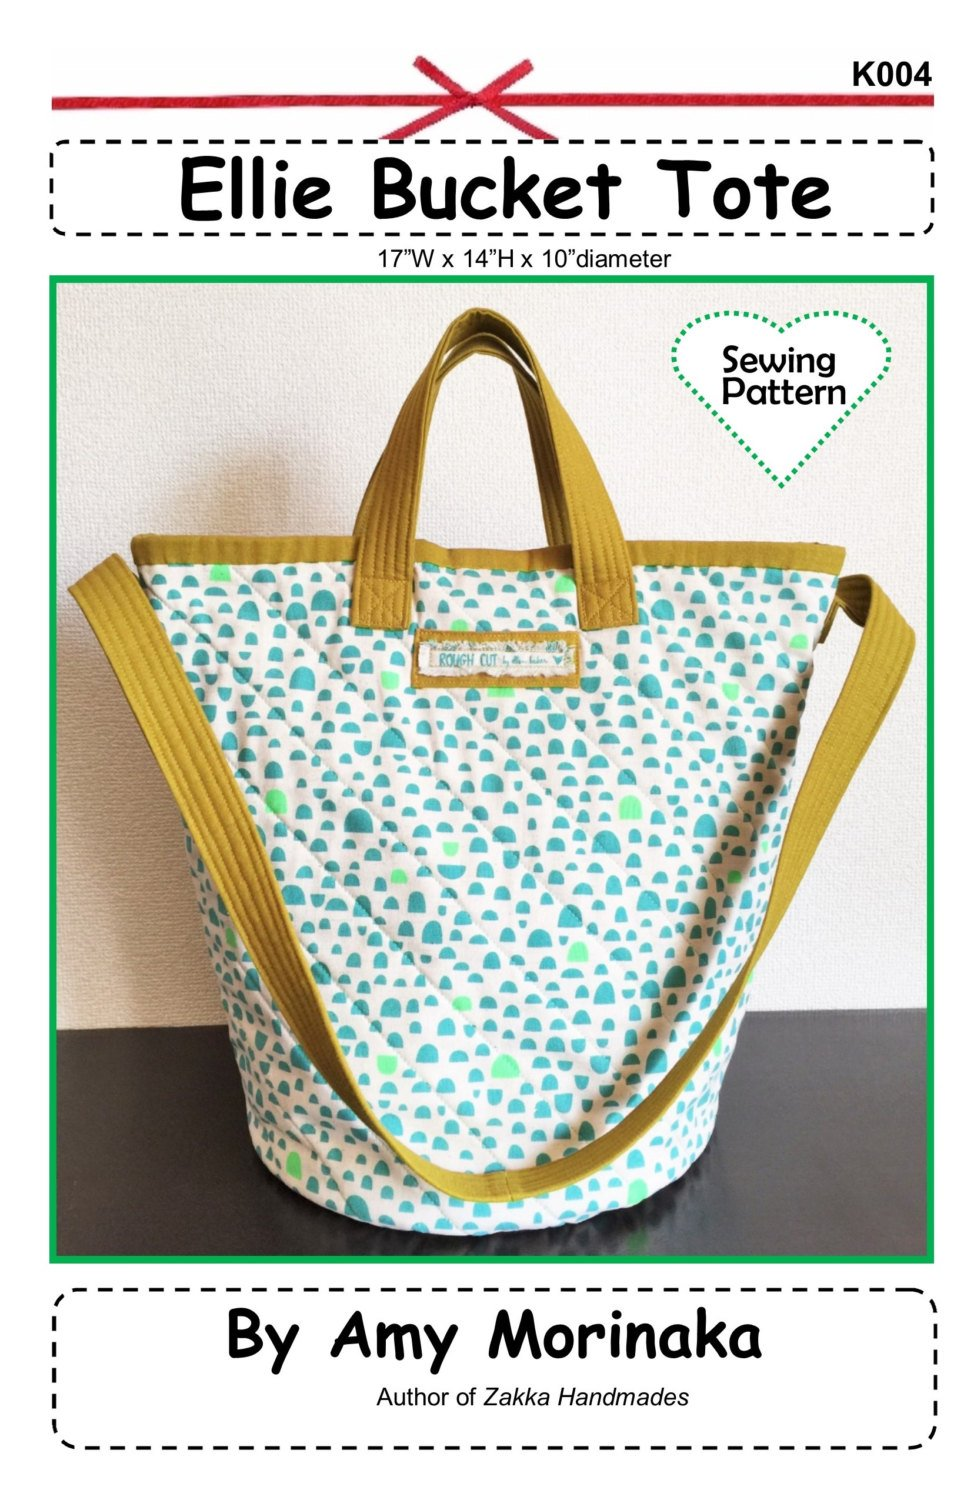 Ellie Bucket Tote Pattern by Amy Morinaka